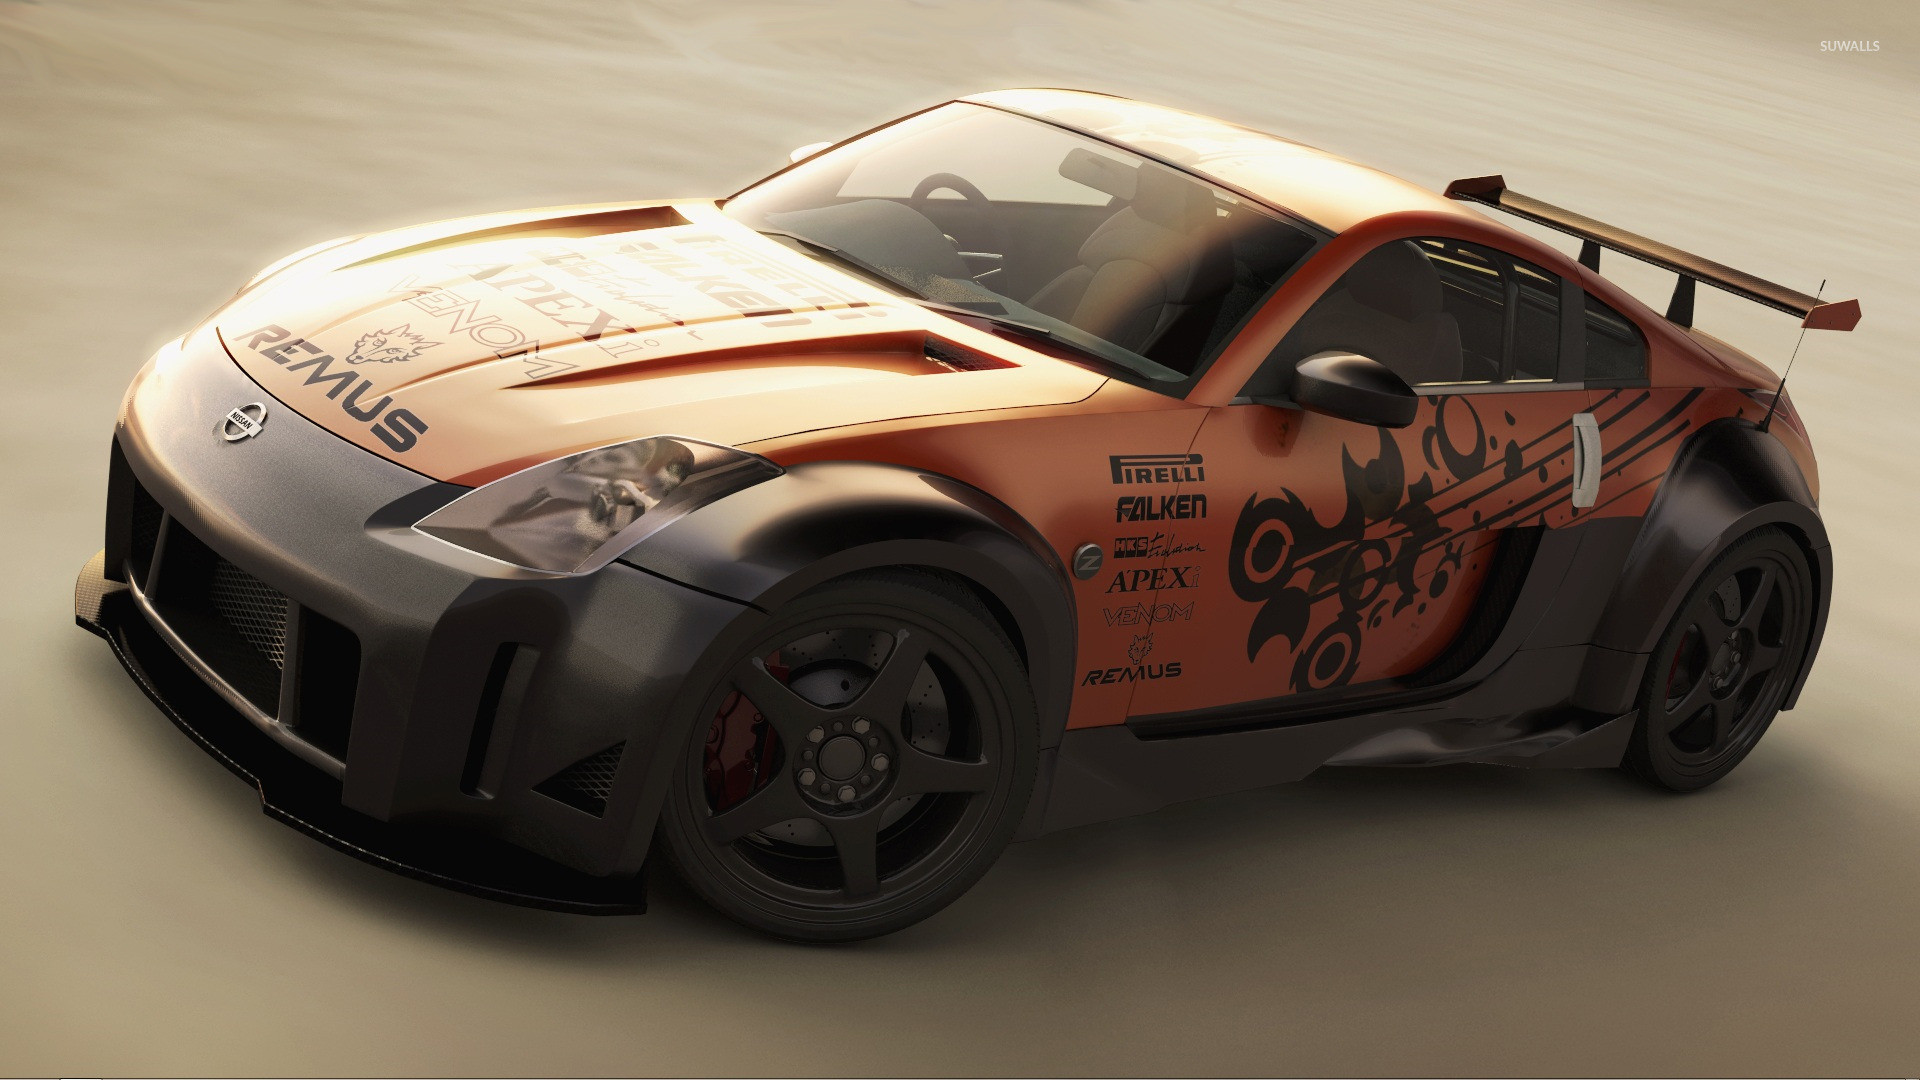 1920x1080 Tuned Nissan 350Z wallpaper